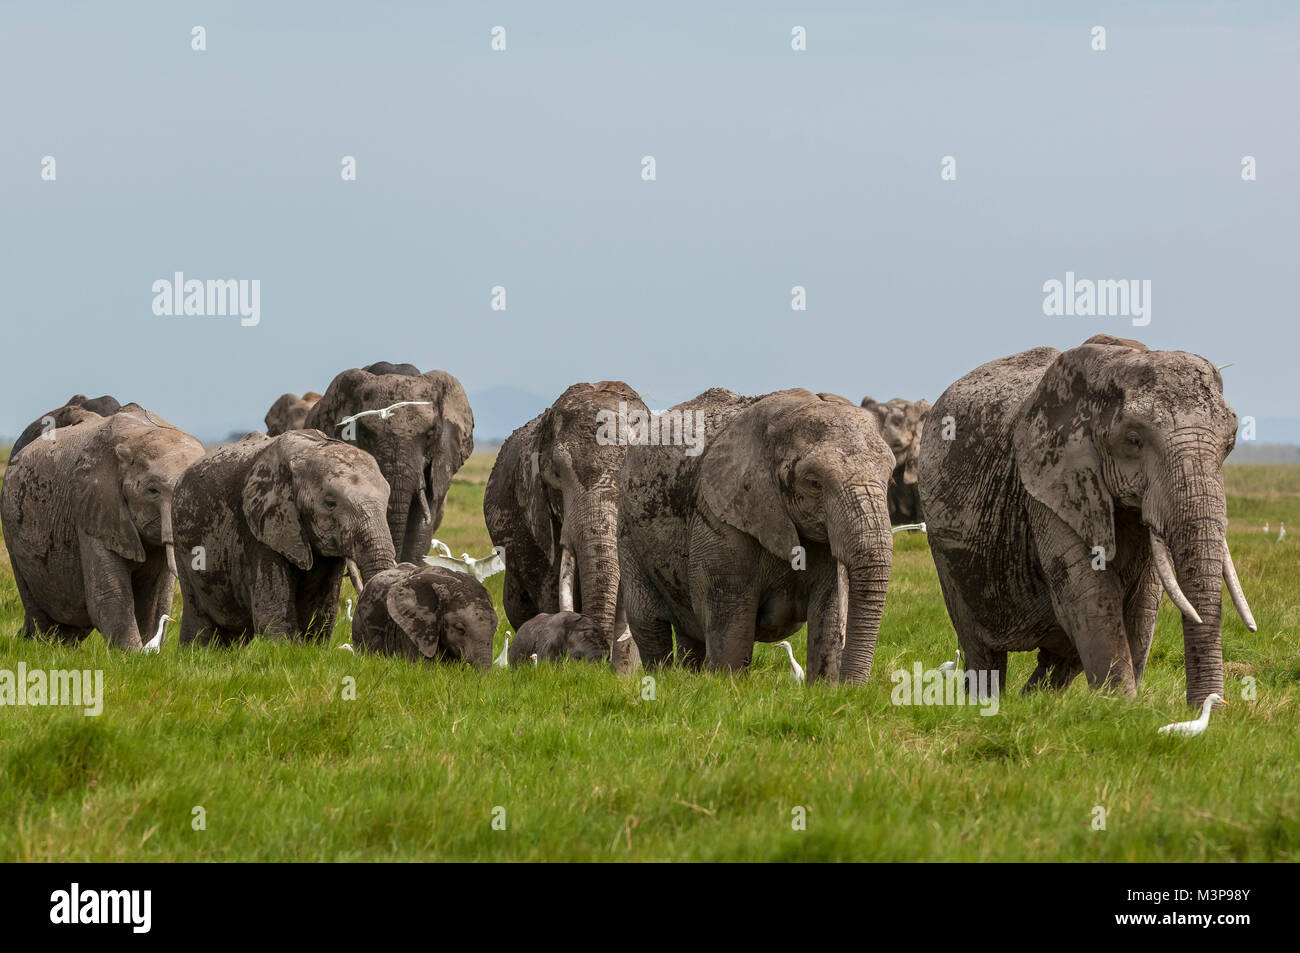 A herd of elephants moving through grassland on the plains of Amboseli NP, Kenya. - Stock Image